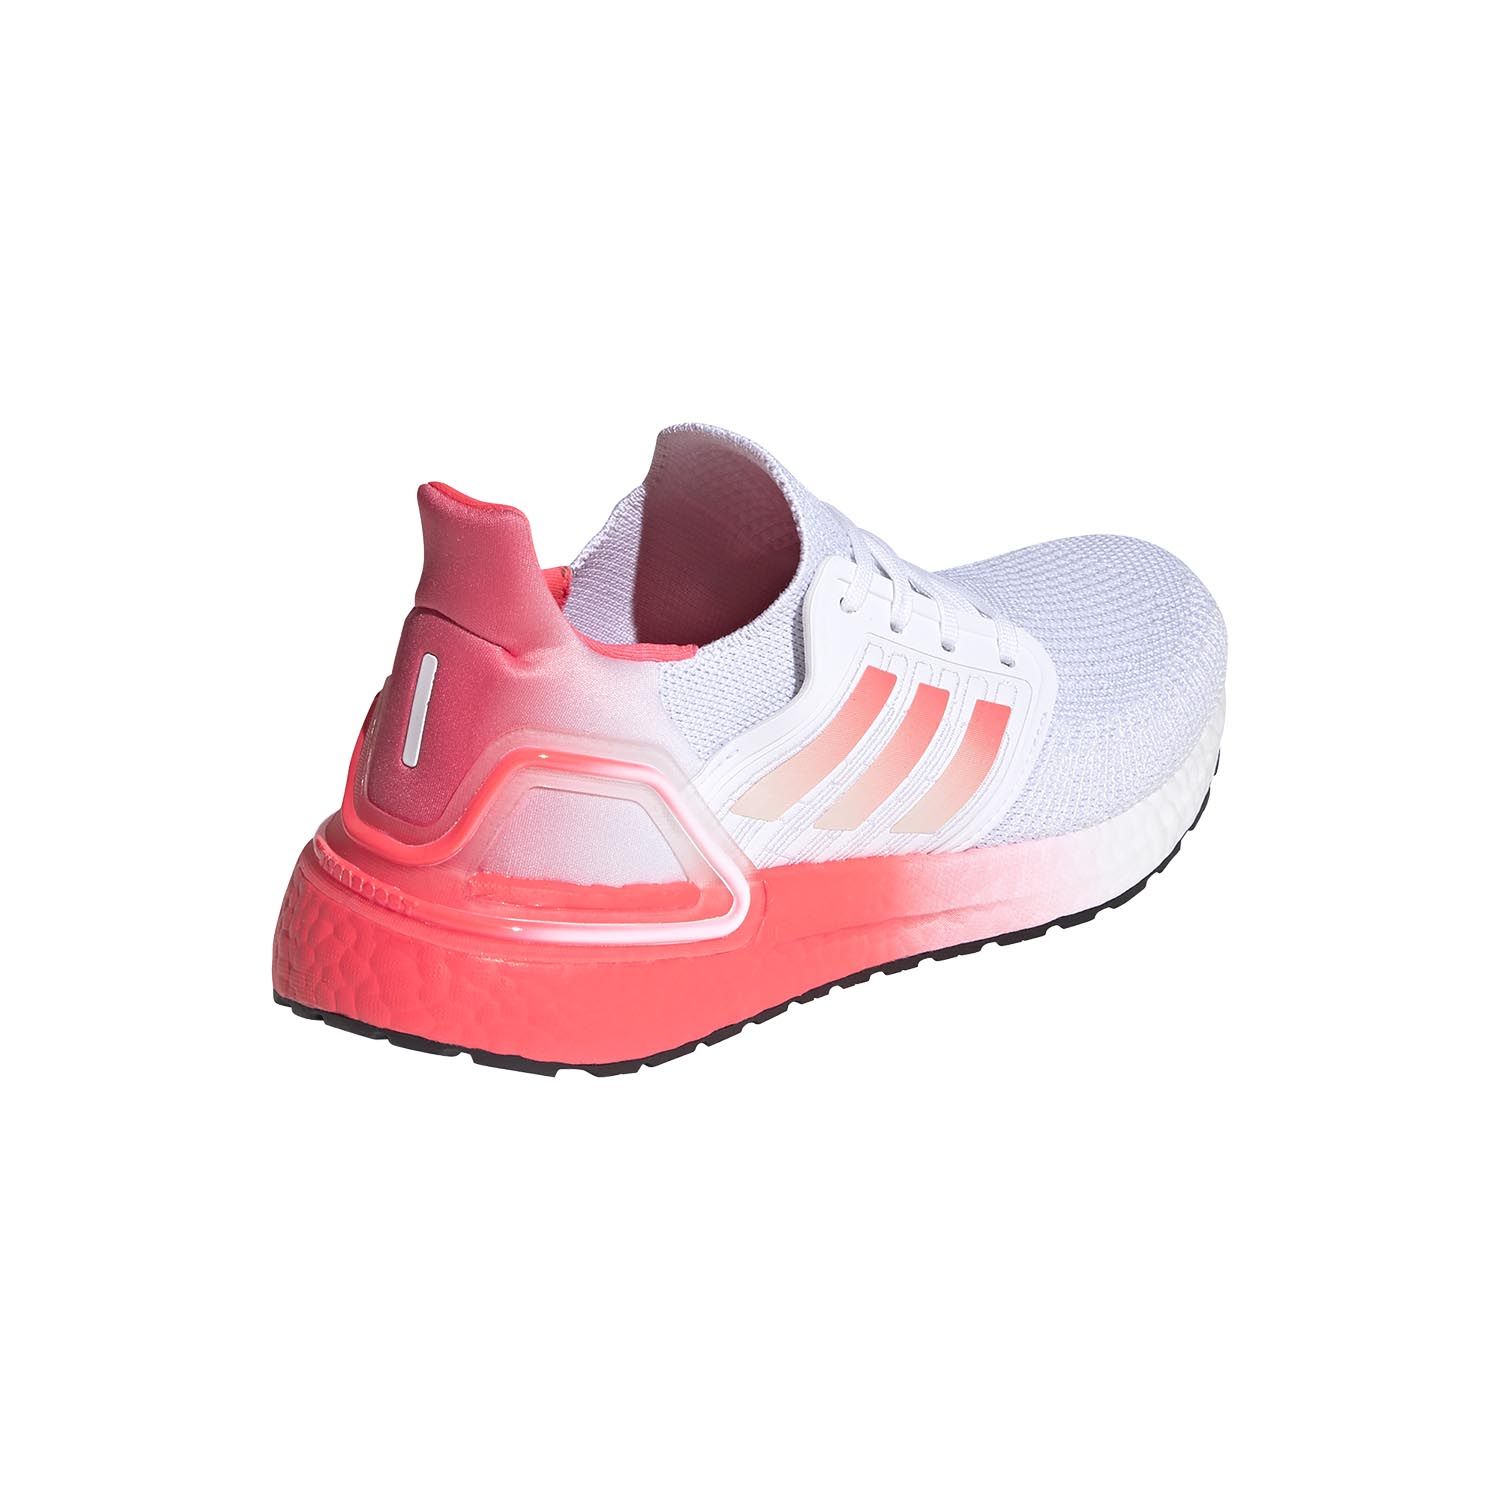 Adidas Ultraboost 20 - Ftwr White/Signal Pink